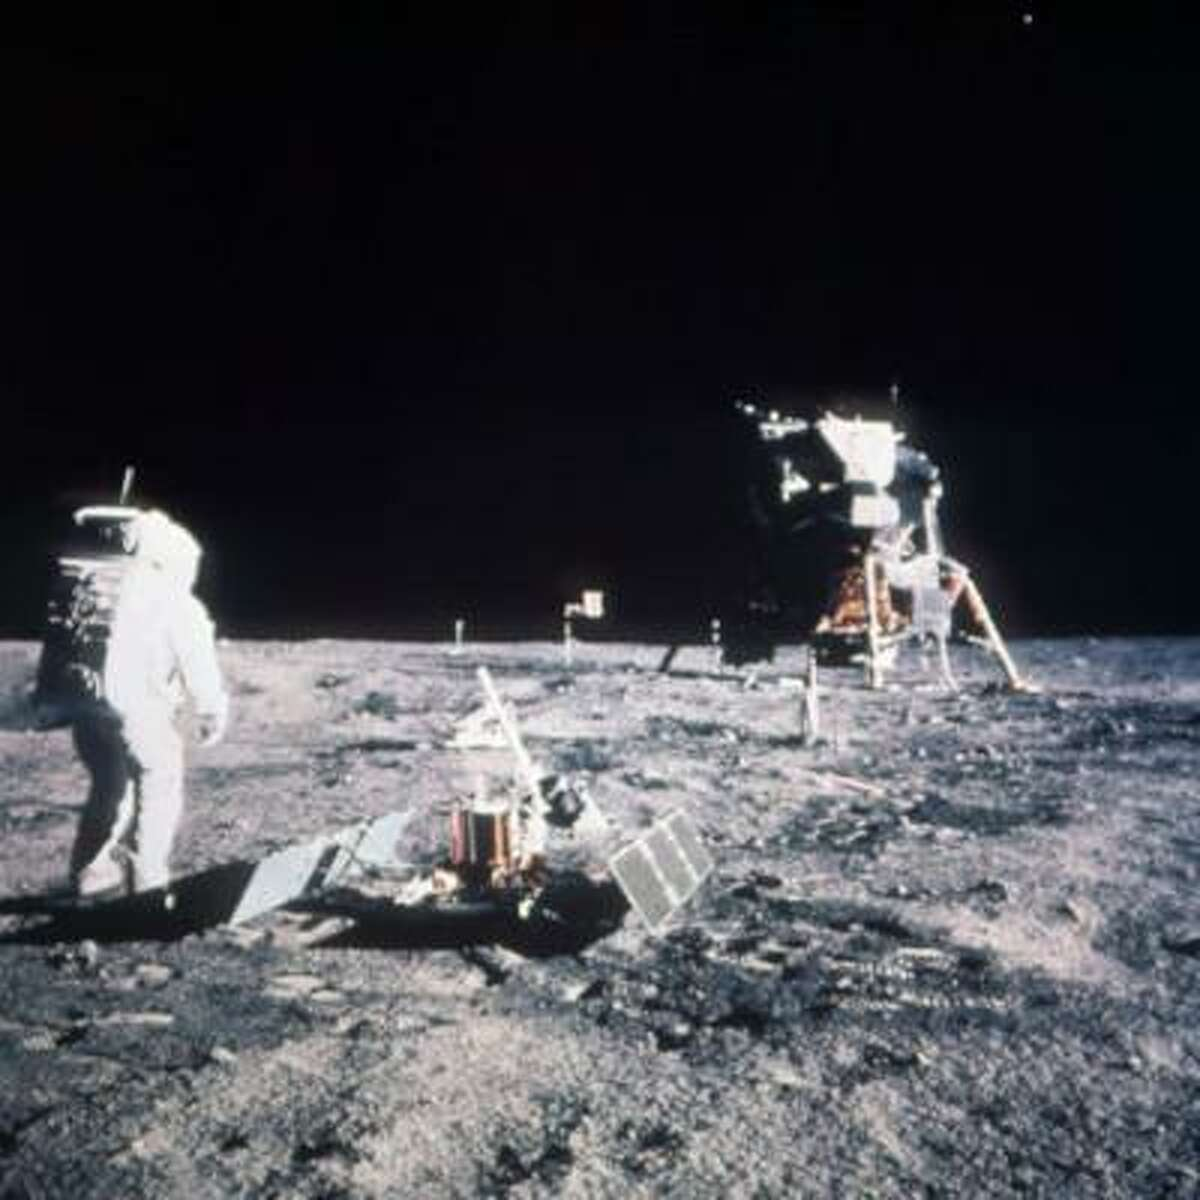 Astronaut Edwin E. Aldrin Jr., lunar module pilot, stands on the lunar surface after the Apollo 11 moon landing on July 20, 1969. The Lunar Module is seen in the background.